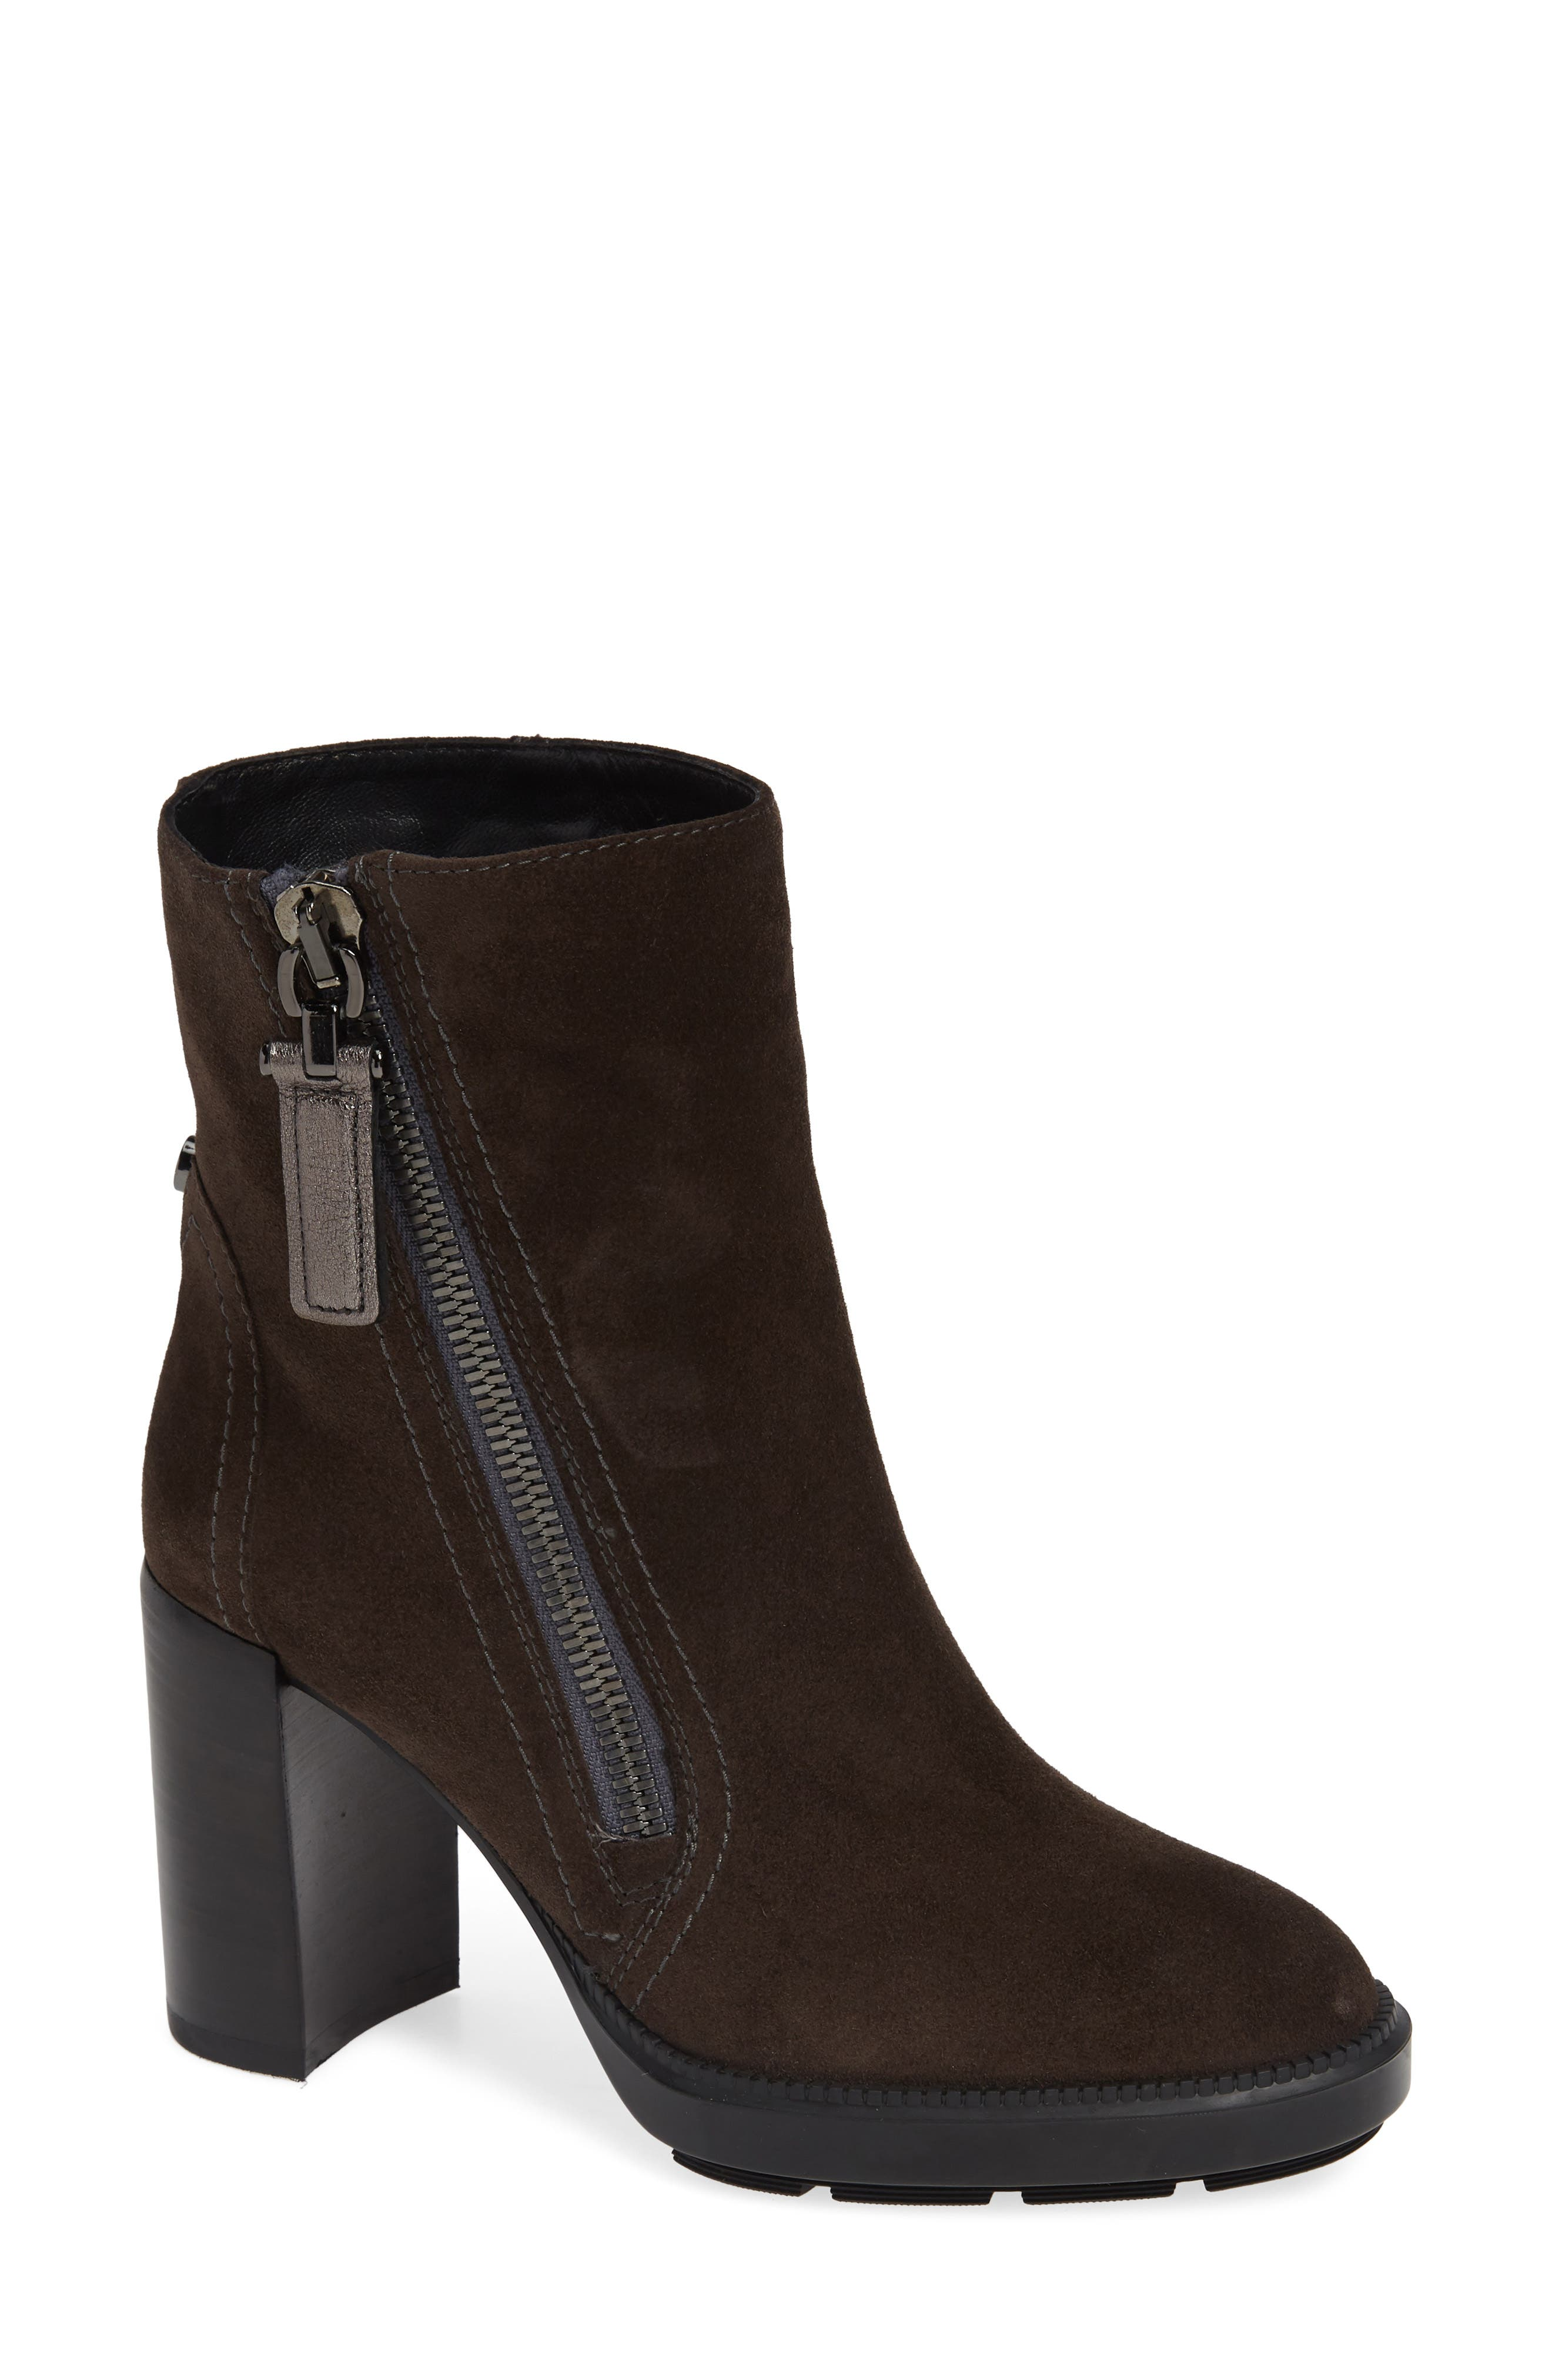 AQUATALIA Ilenia Weatherproof Bootie in Grey Metallic Suede